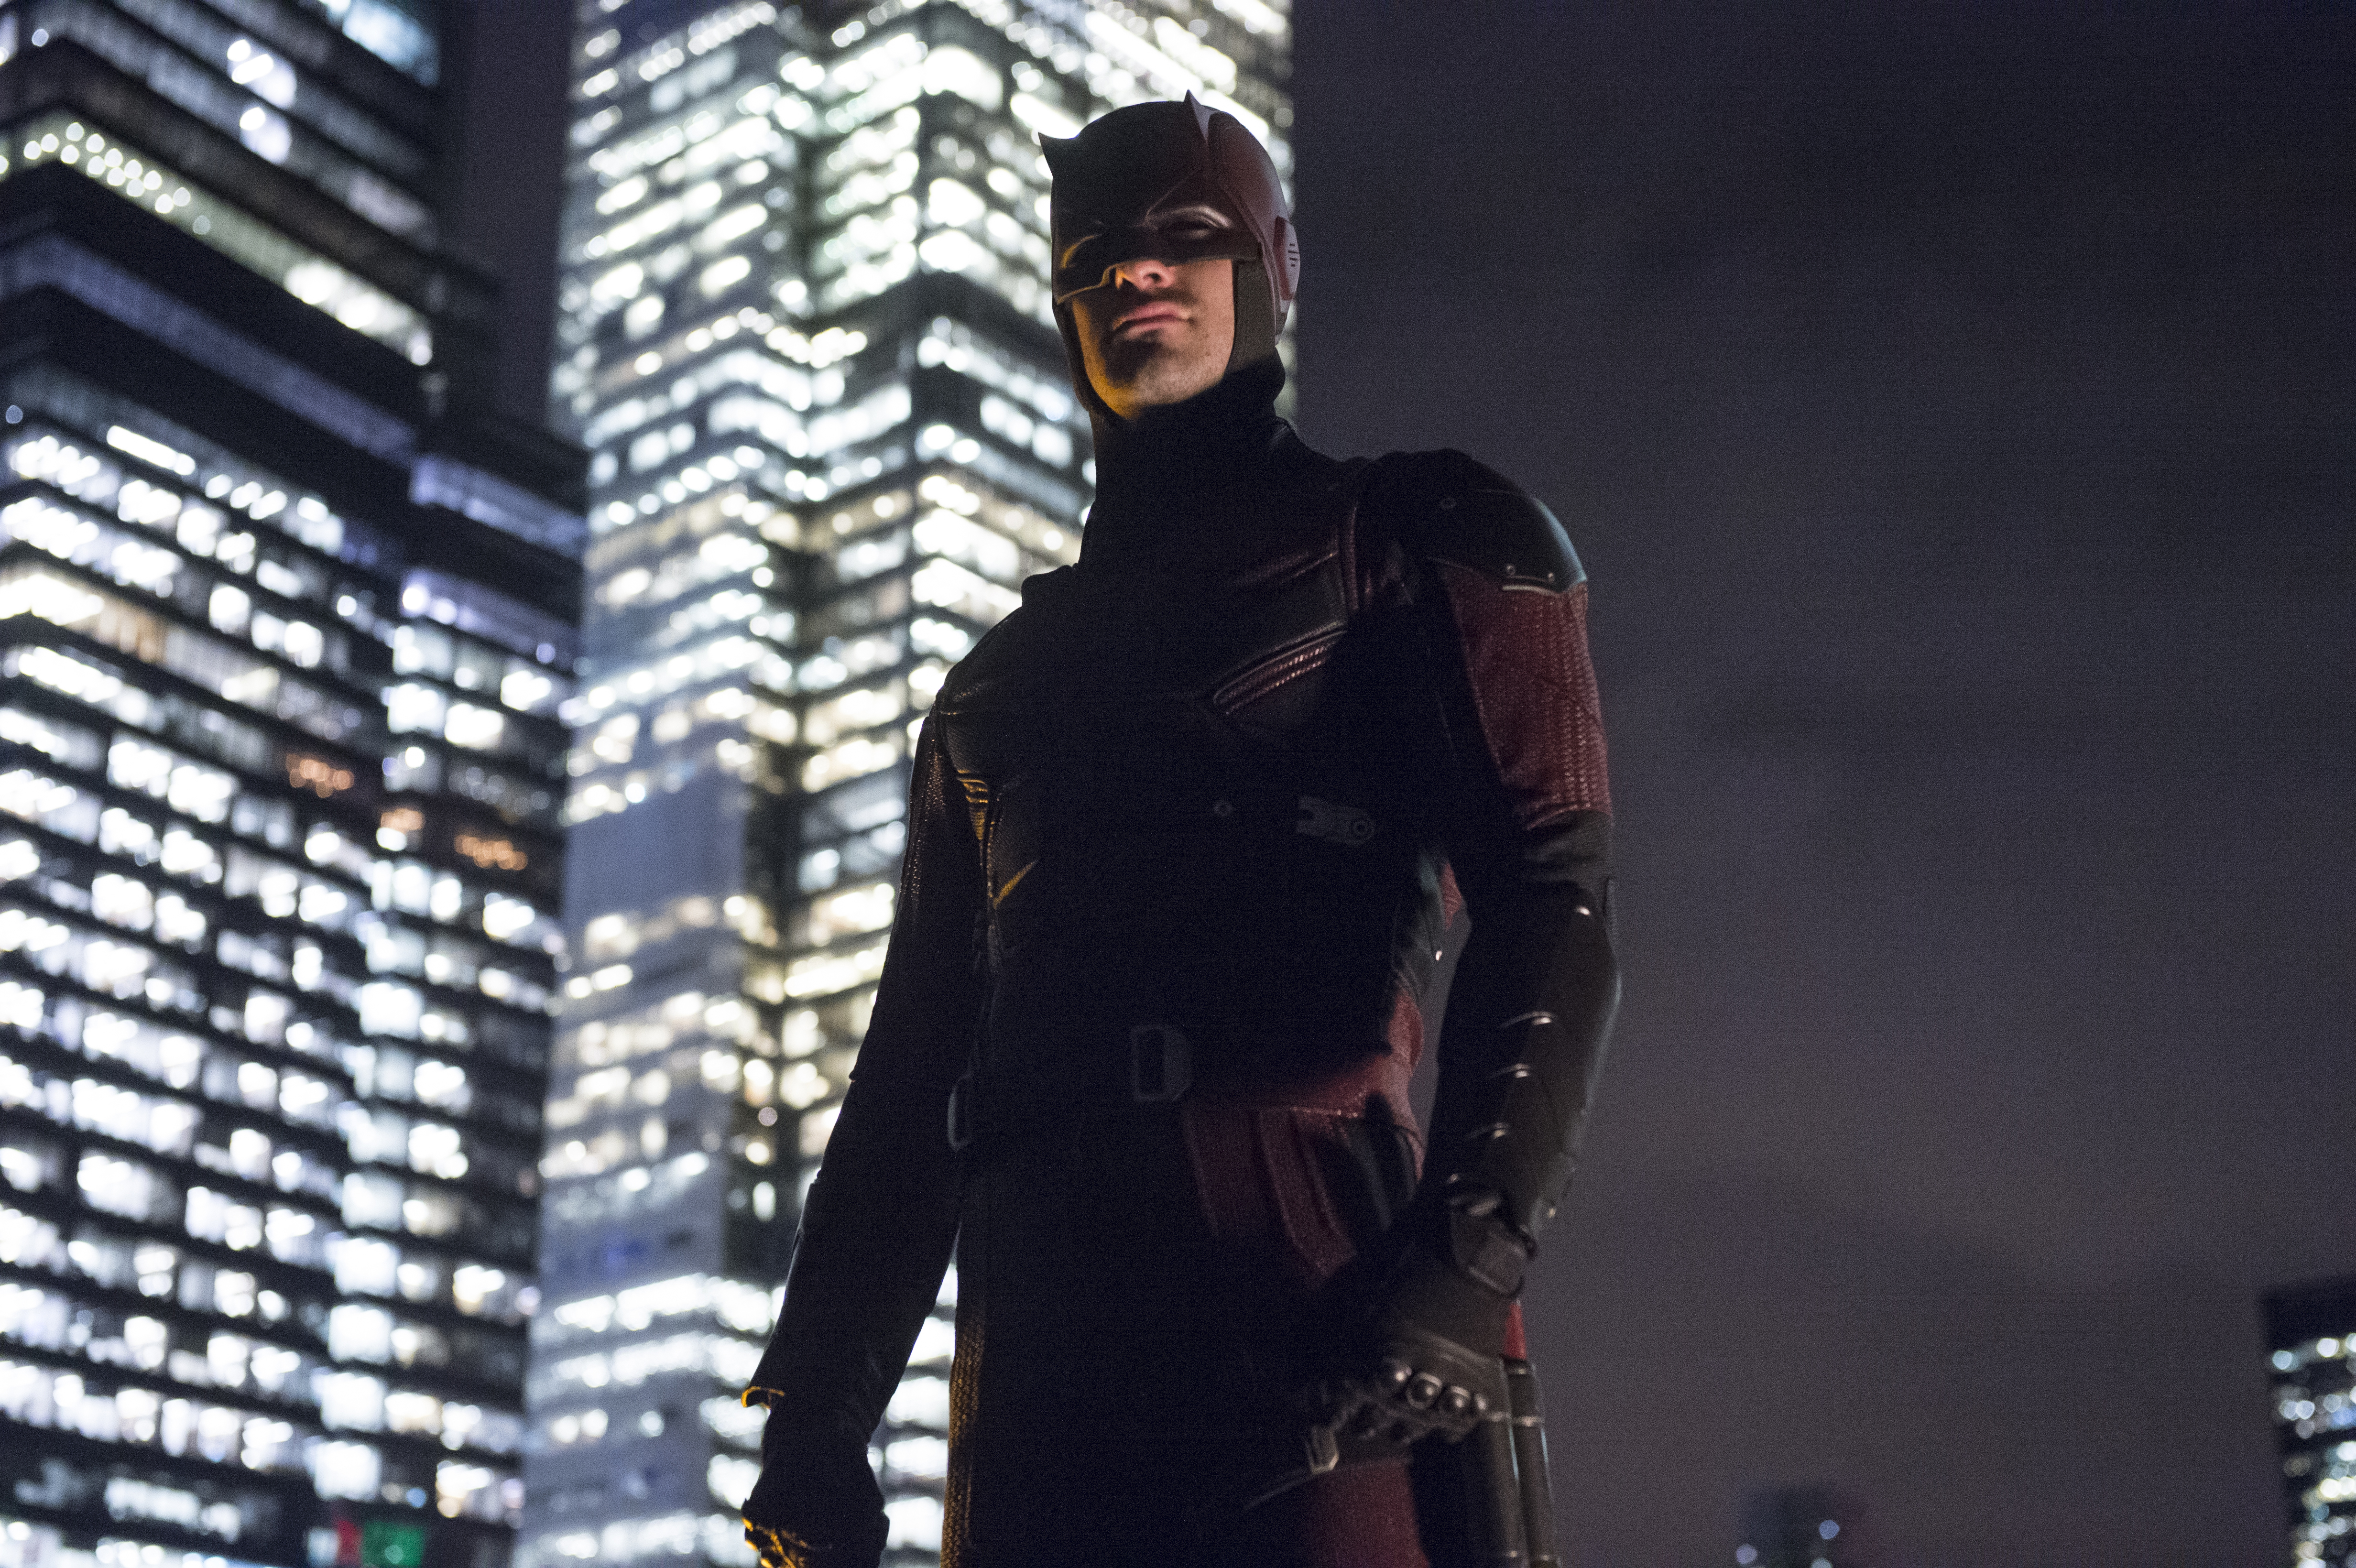 """Charlie Cox as Daredevil in the Netflix Original Series """"Marvel's Daredevil"""" Photo: Barry Wetcher © 2014 Netflix, Inc. All rights reserved."""